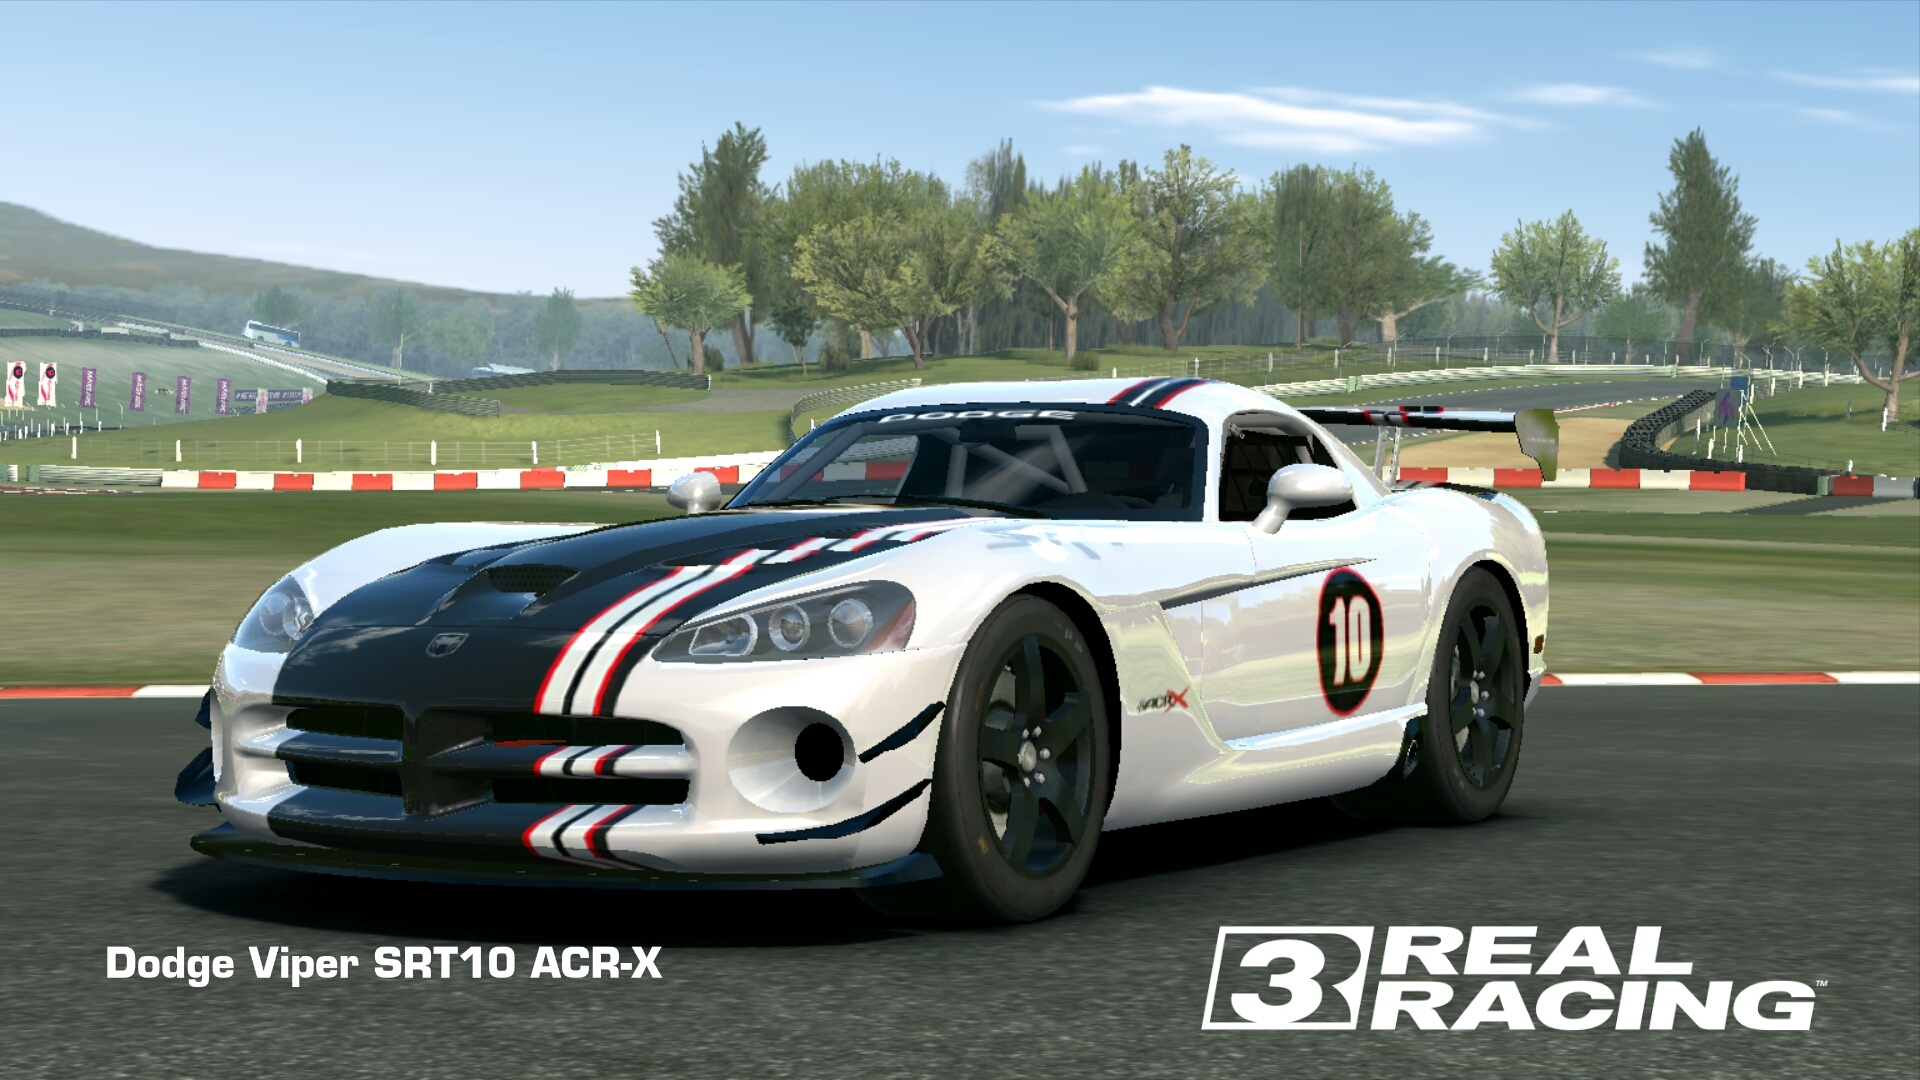 Showcase Dodge Viper SRT10 ACR-X